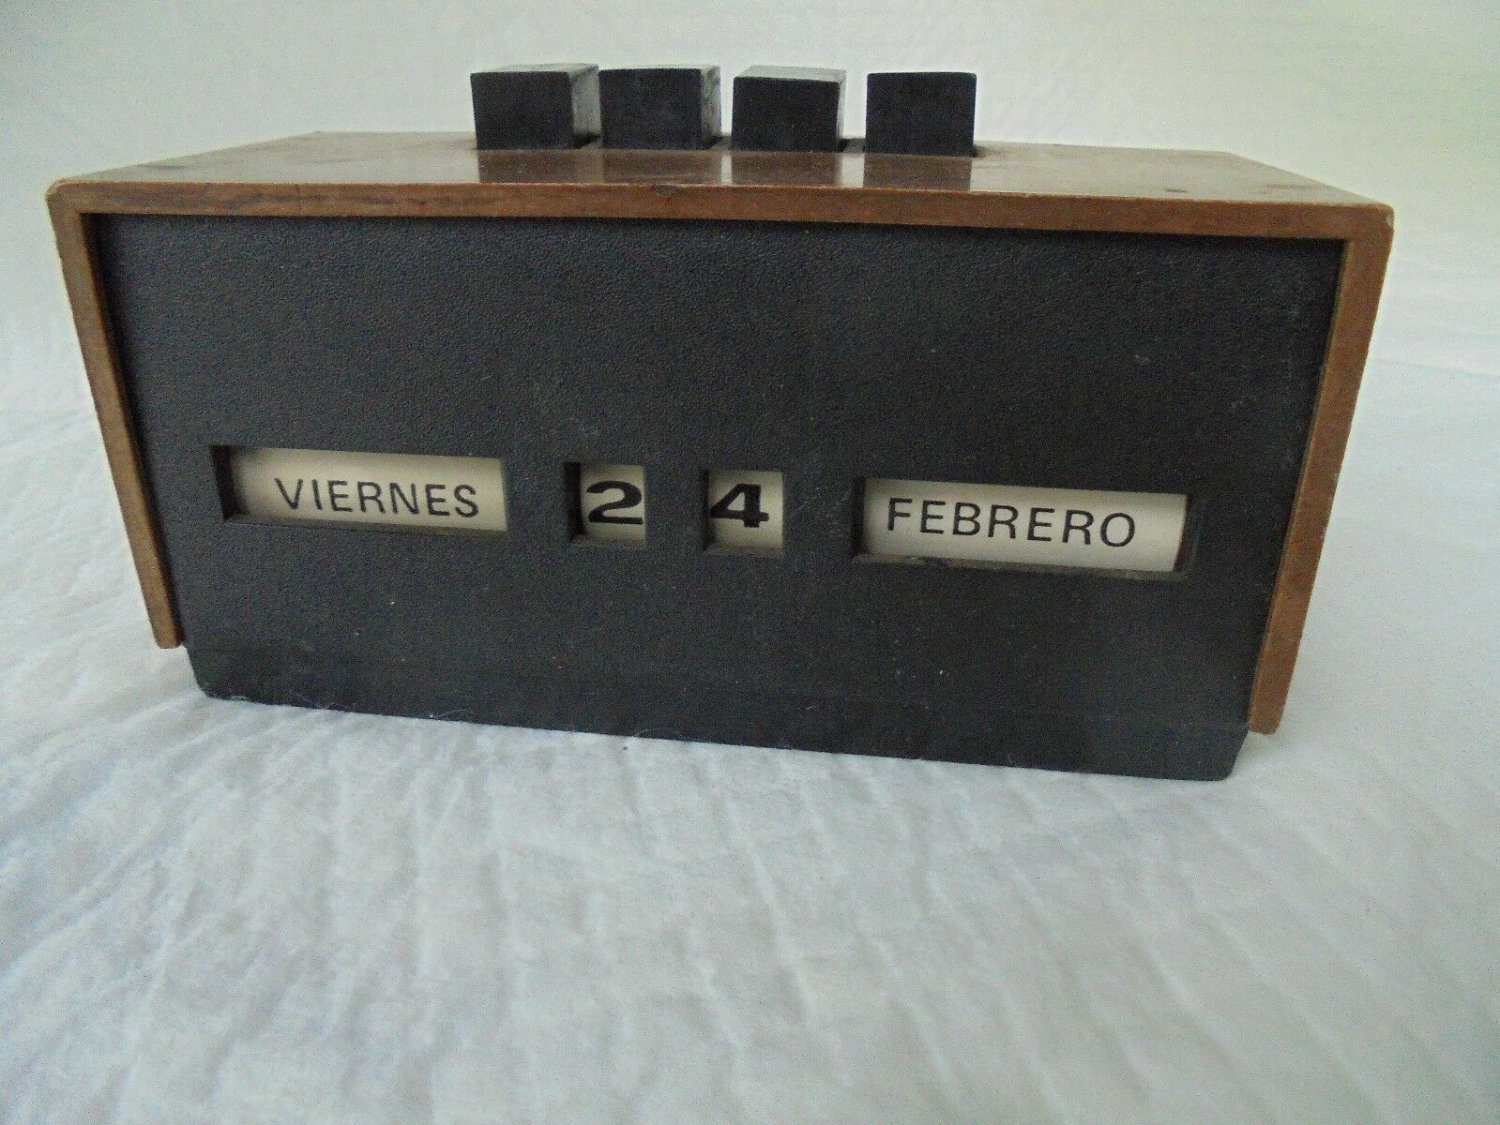 PERPETUAL CALENDAR for desk or table Made in Spain Original from 1960s